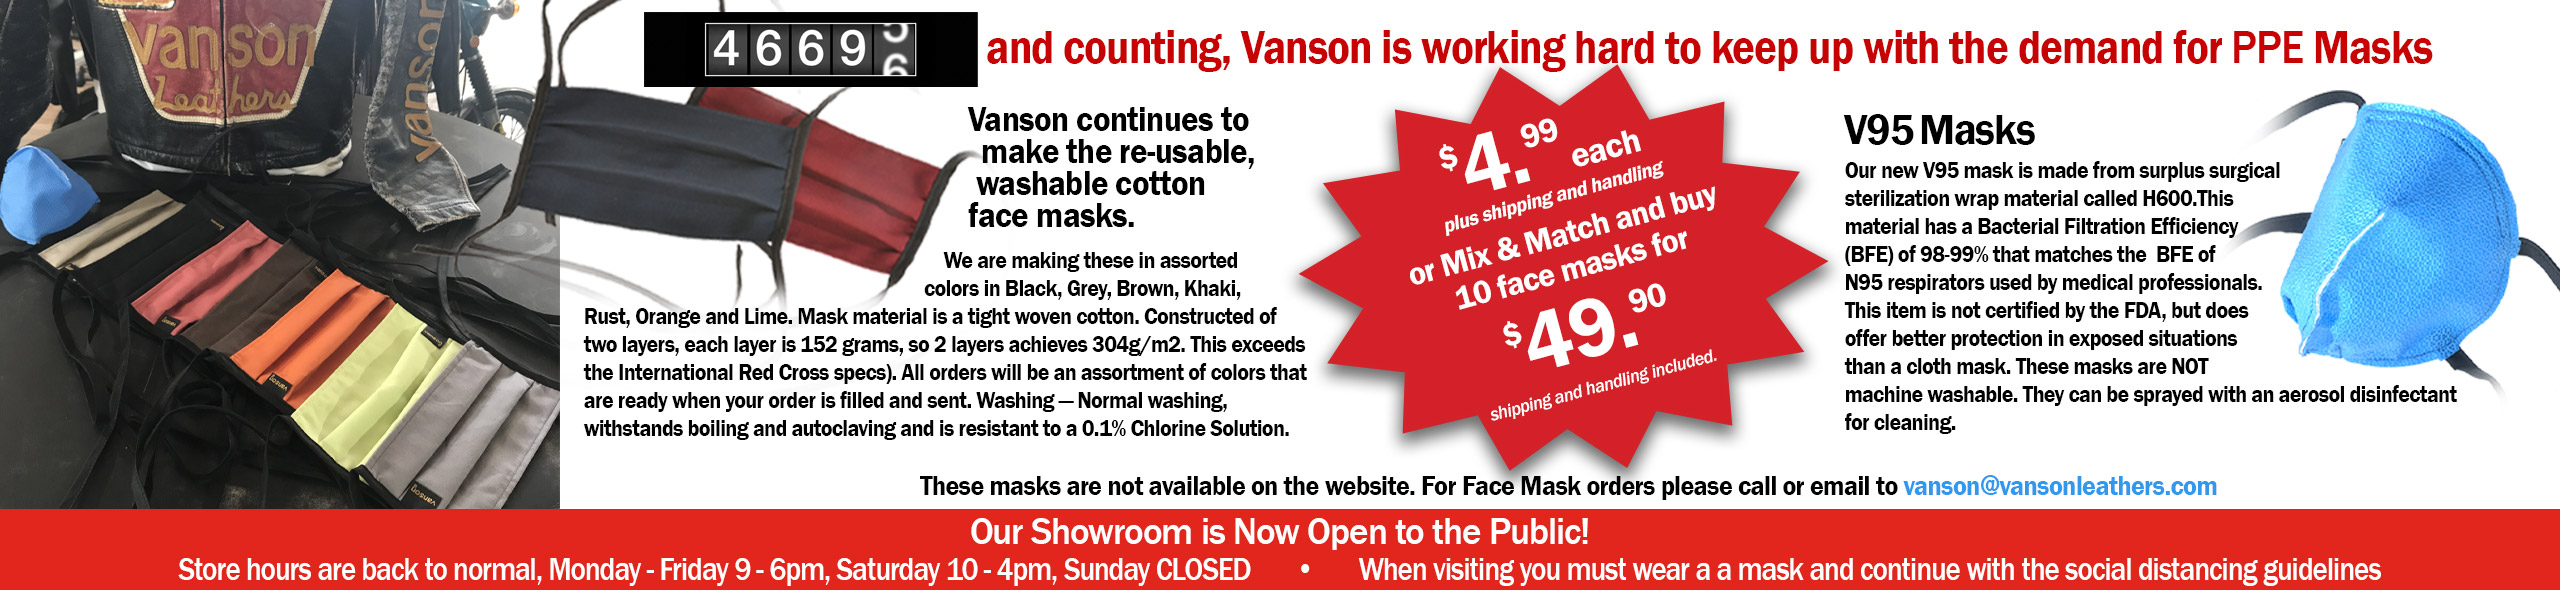 No Fooling... Vanson has PPE 4U - Buy ten masks 49.90